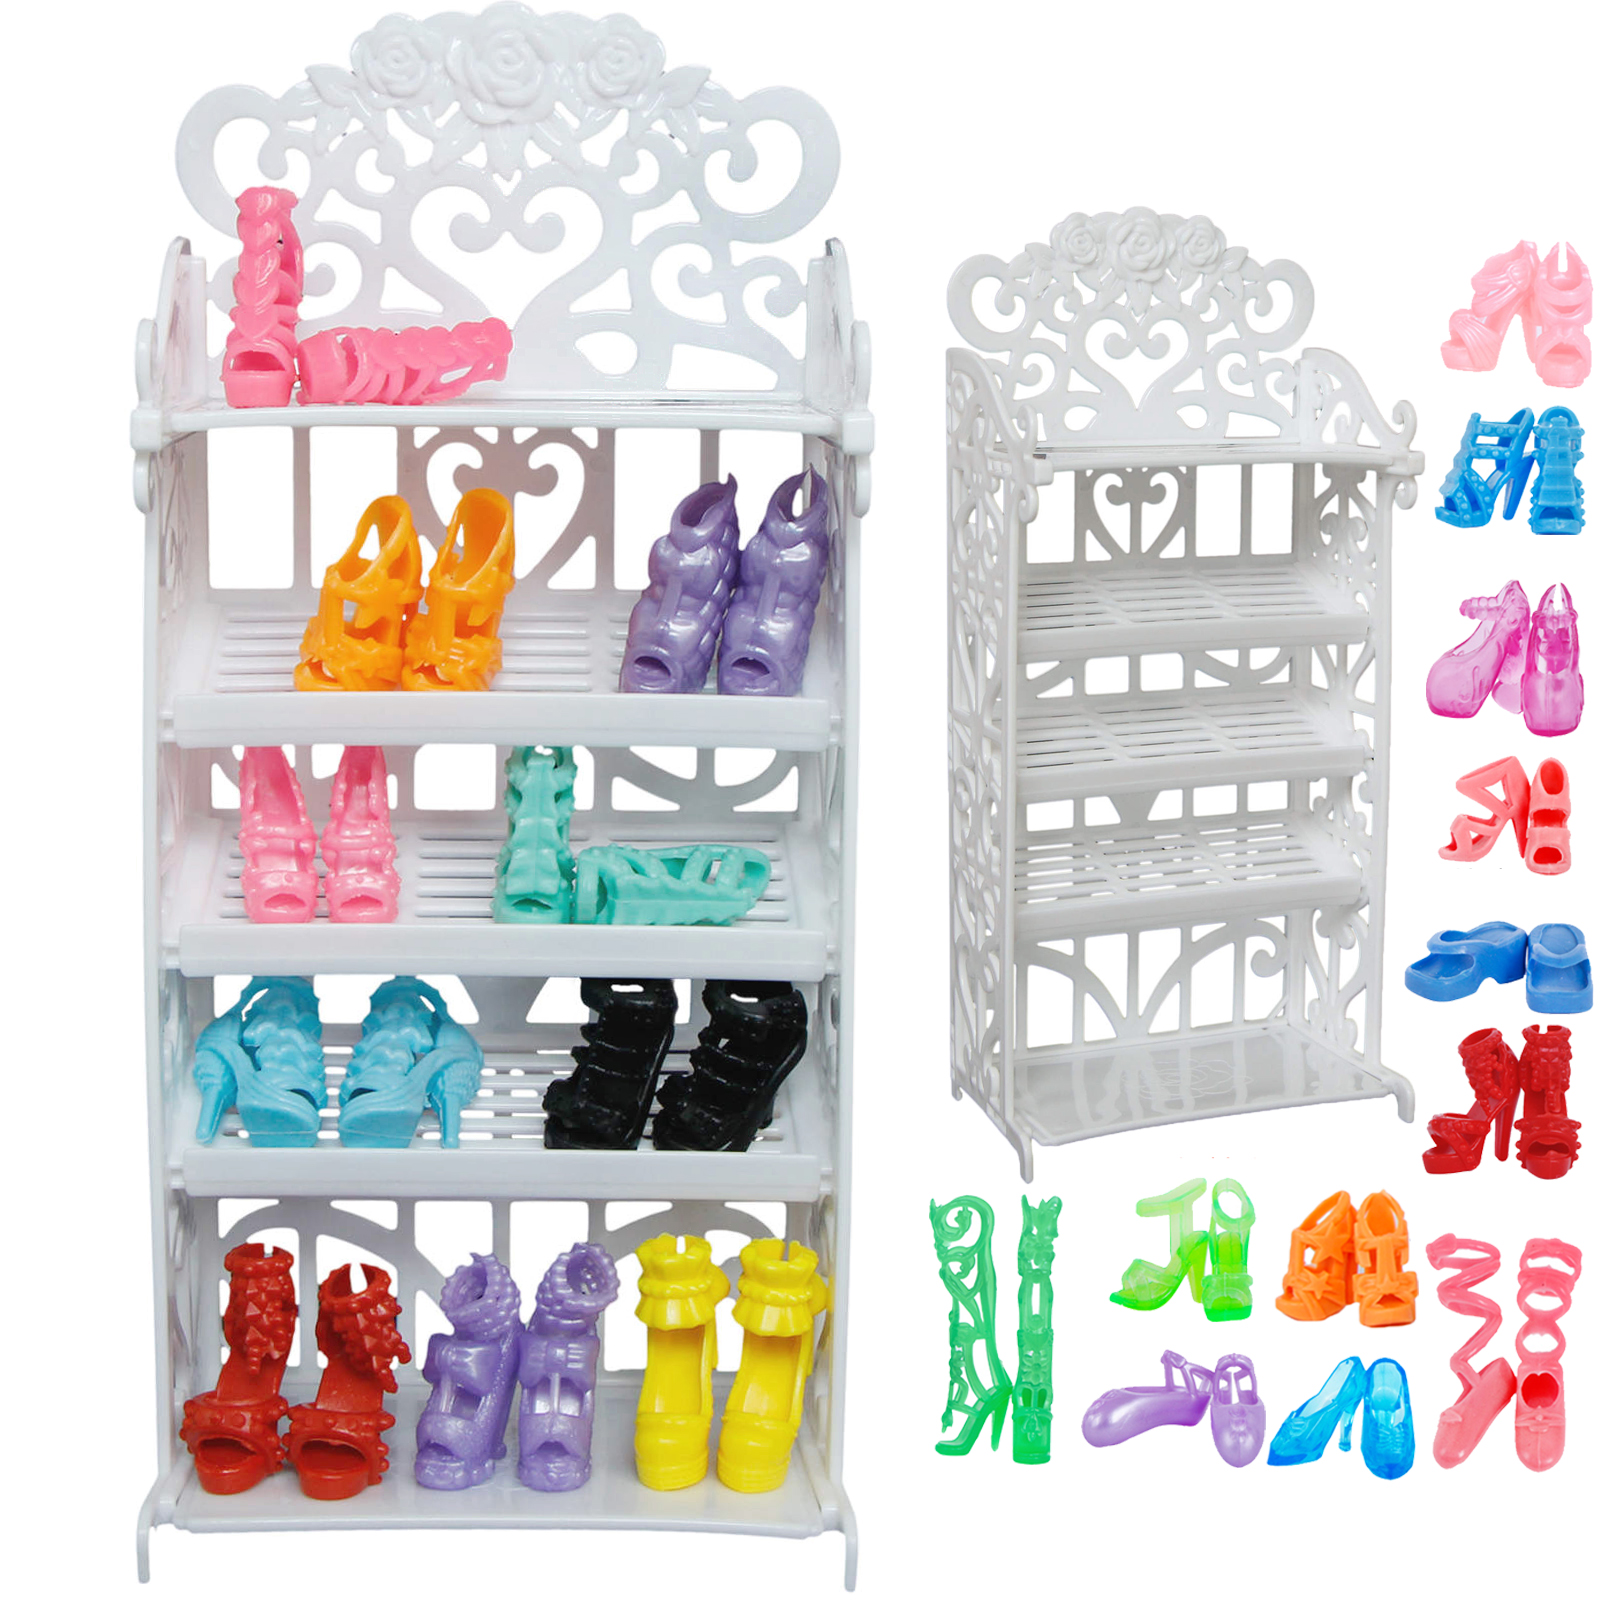 1x Plastic White Doll Shoes Rack / Random 12 Pairs Shoes Dollhouse Furniture Accessories For Barbie Doll Kids Toy